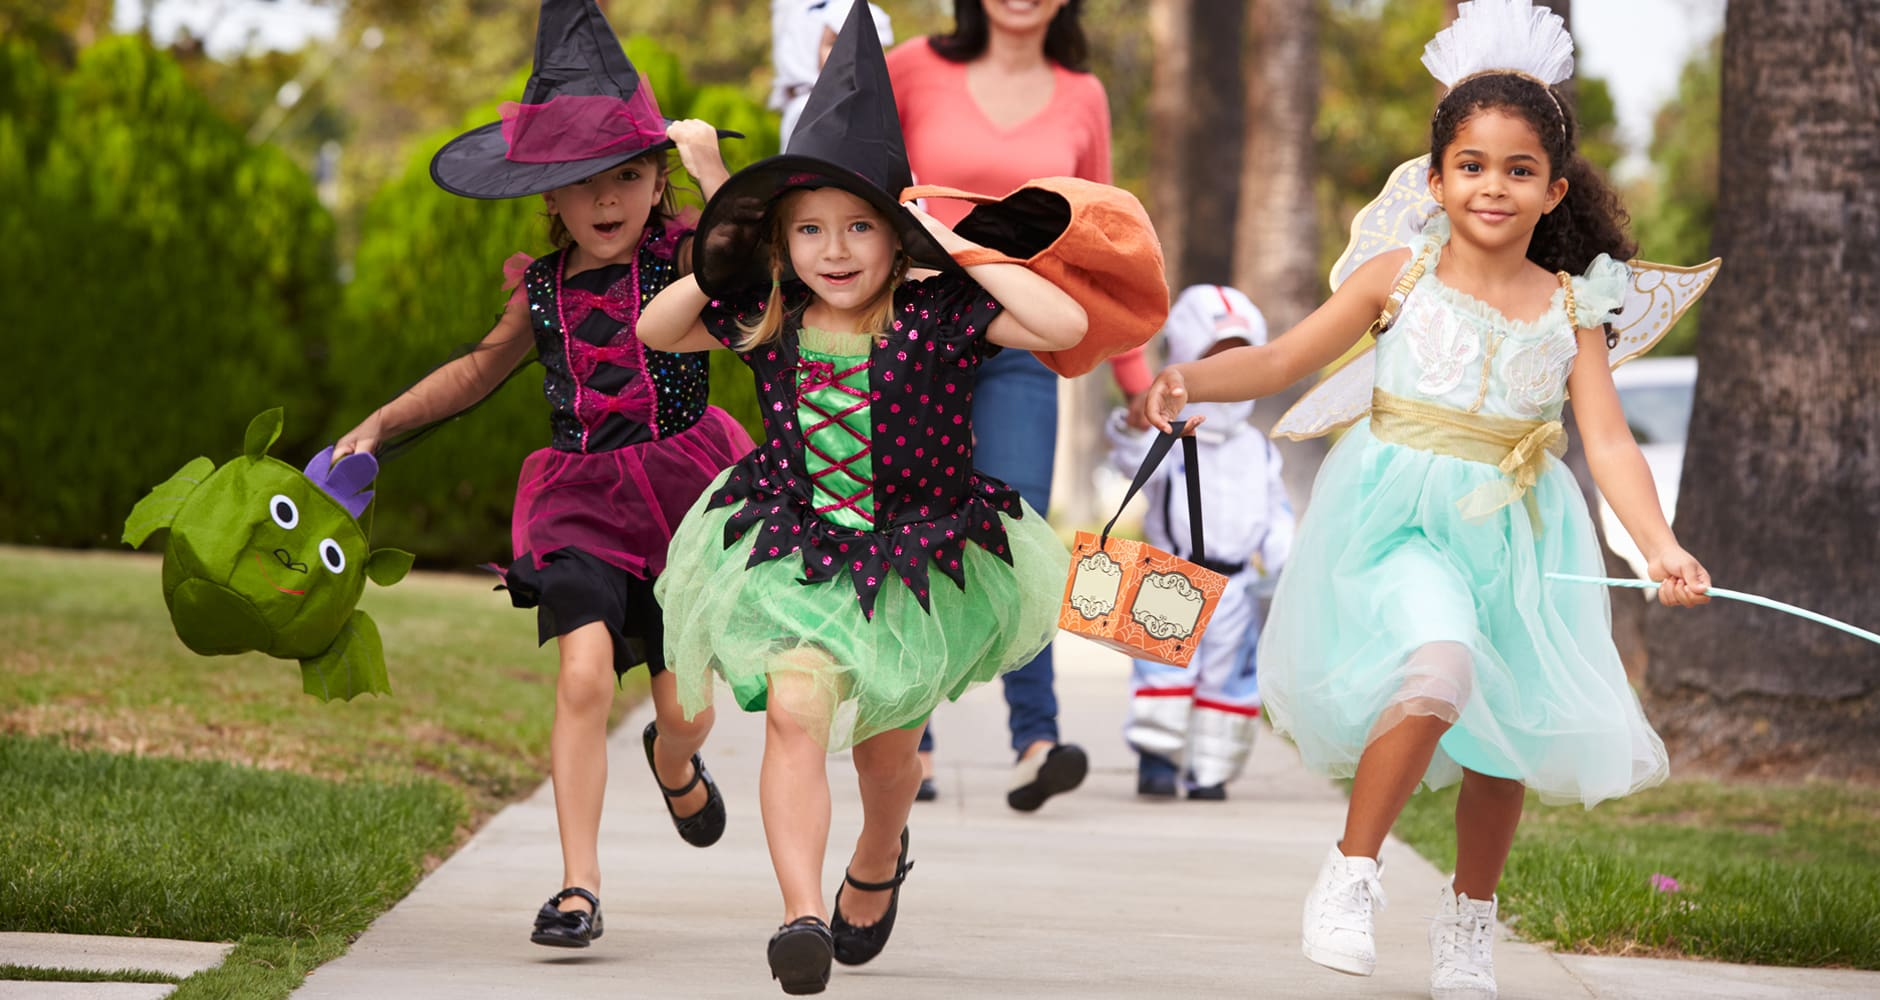 Move Trick or Treating To Saturday?image preview